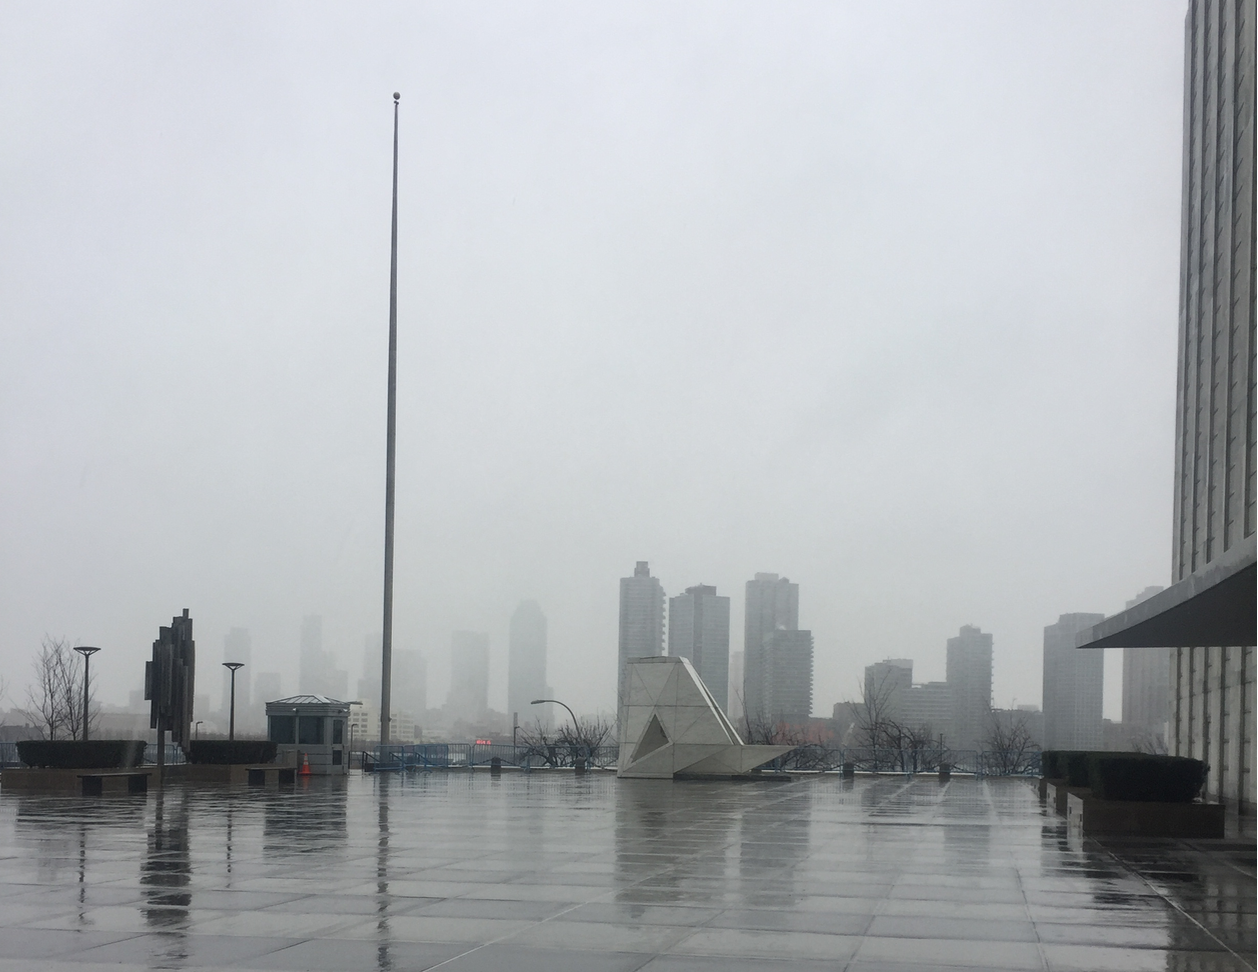 It was a cold, rainy day outside the UN headquarters in NYC on March 2nd, the day of the UN World Wildlife Day event.